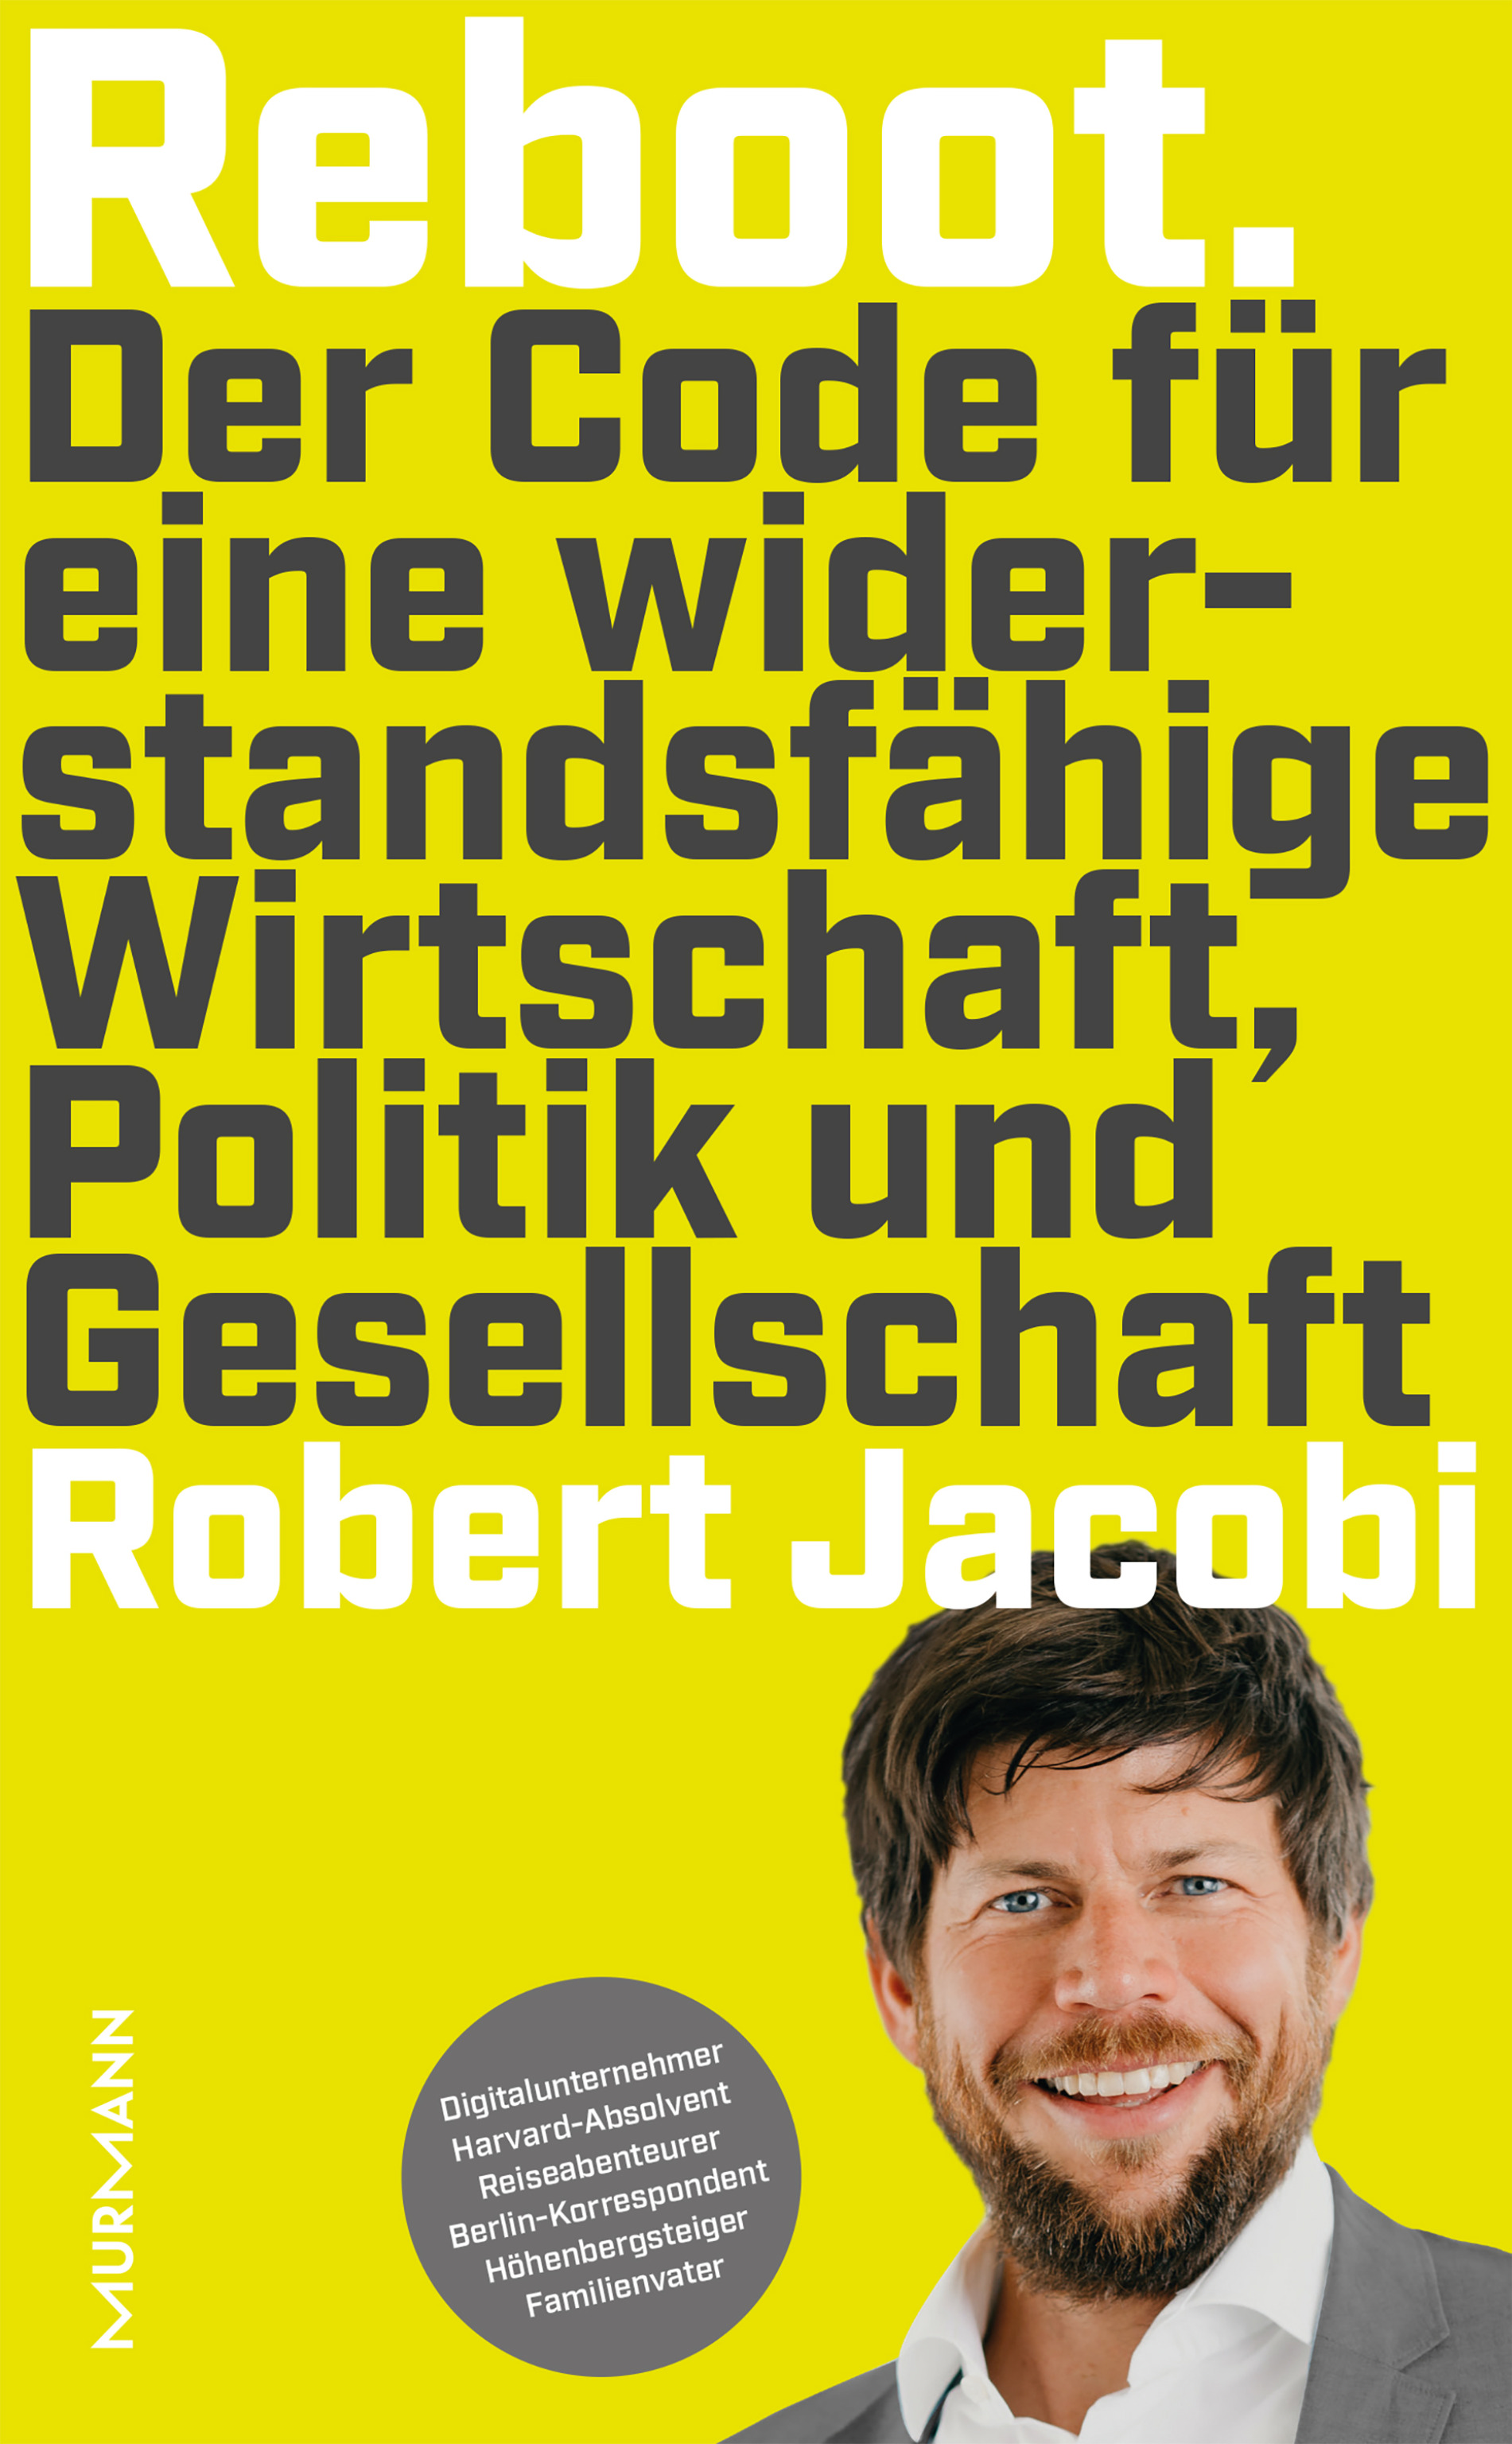 *Reboot / Robert Jacobi (E-Book)